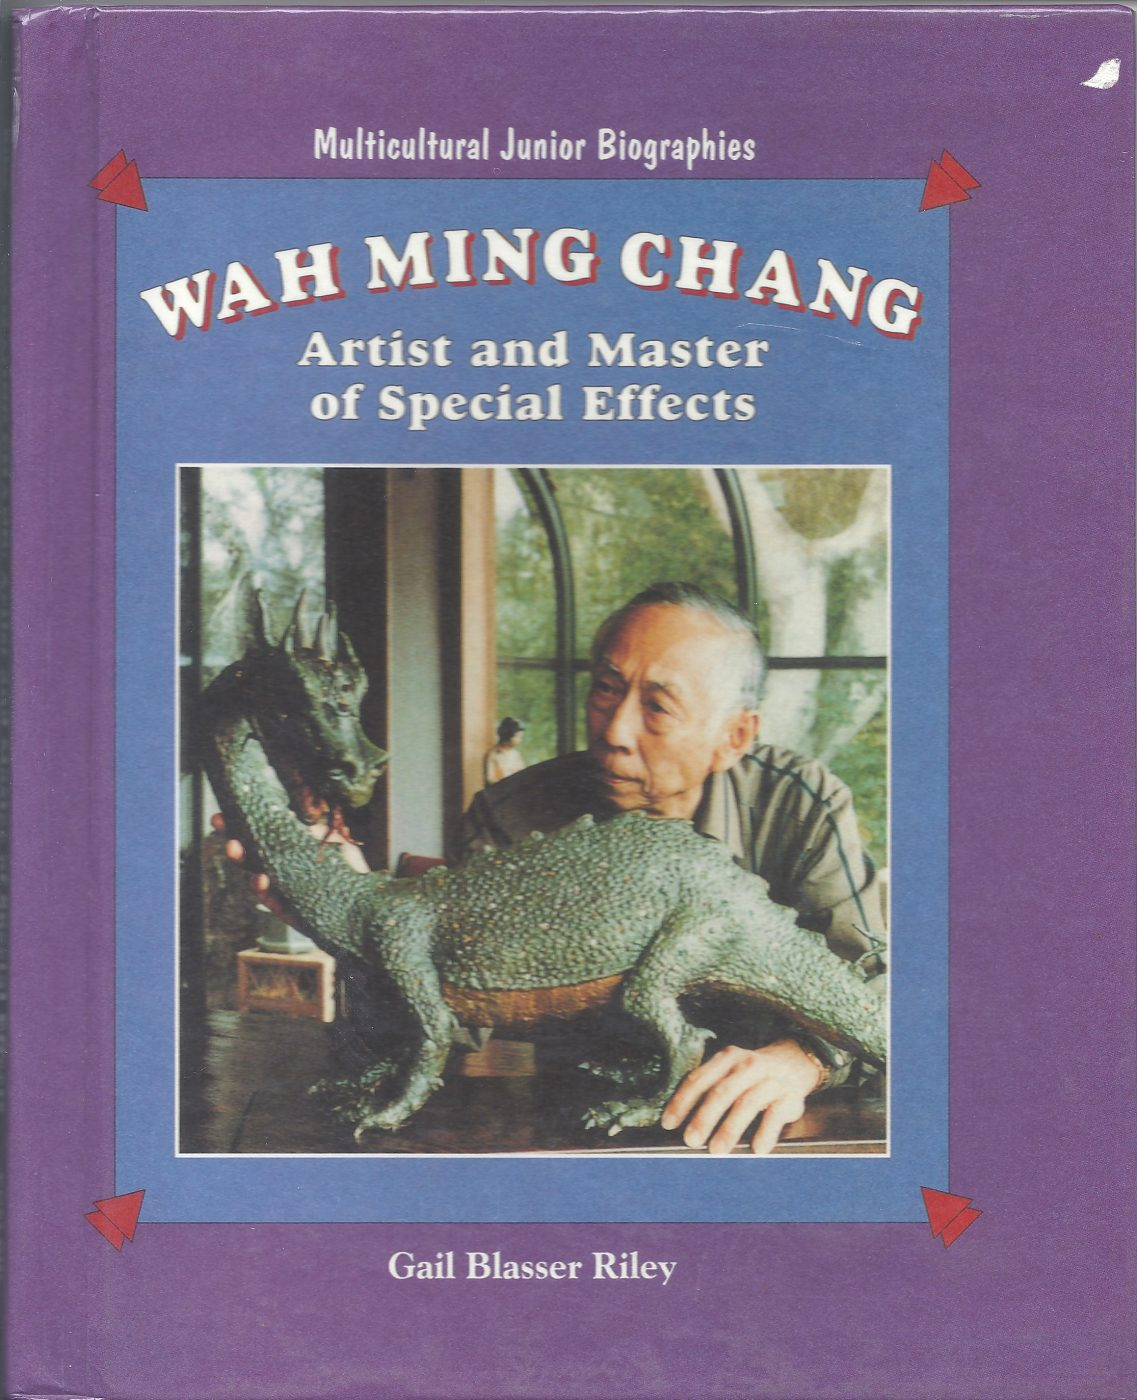 24 September 2019 Posted. Book Wah Ming Chang: Artist and Master of Special Effects. Courtesy of Alex Jay, Museum of Chinese in America (MOCA) Collection.  有关郑华明的书《郑华明:特效艺术家和大师》Alex Jay捐赠,美国华人博物馆(MOCA)馆藏